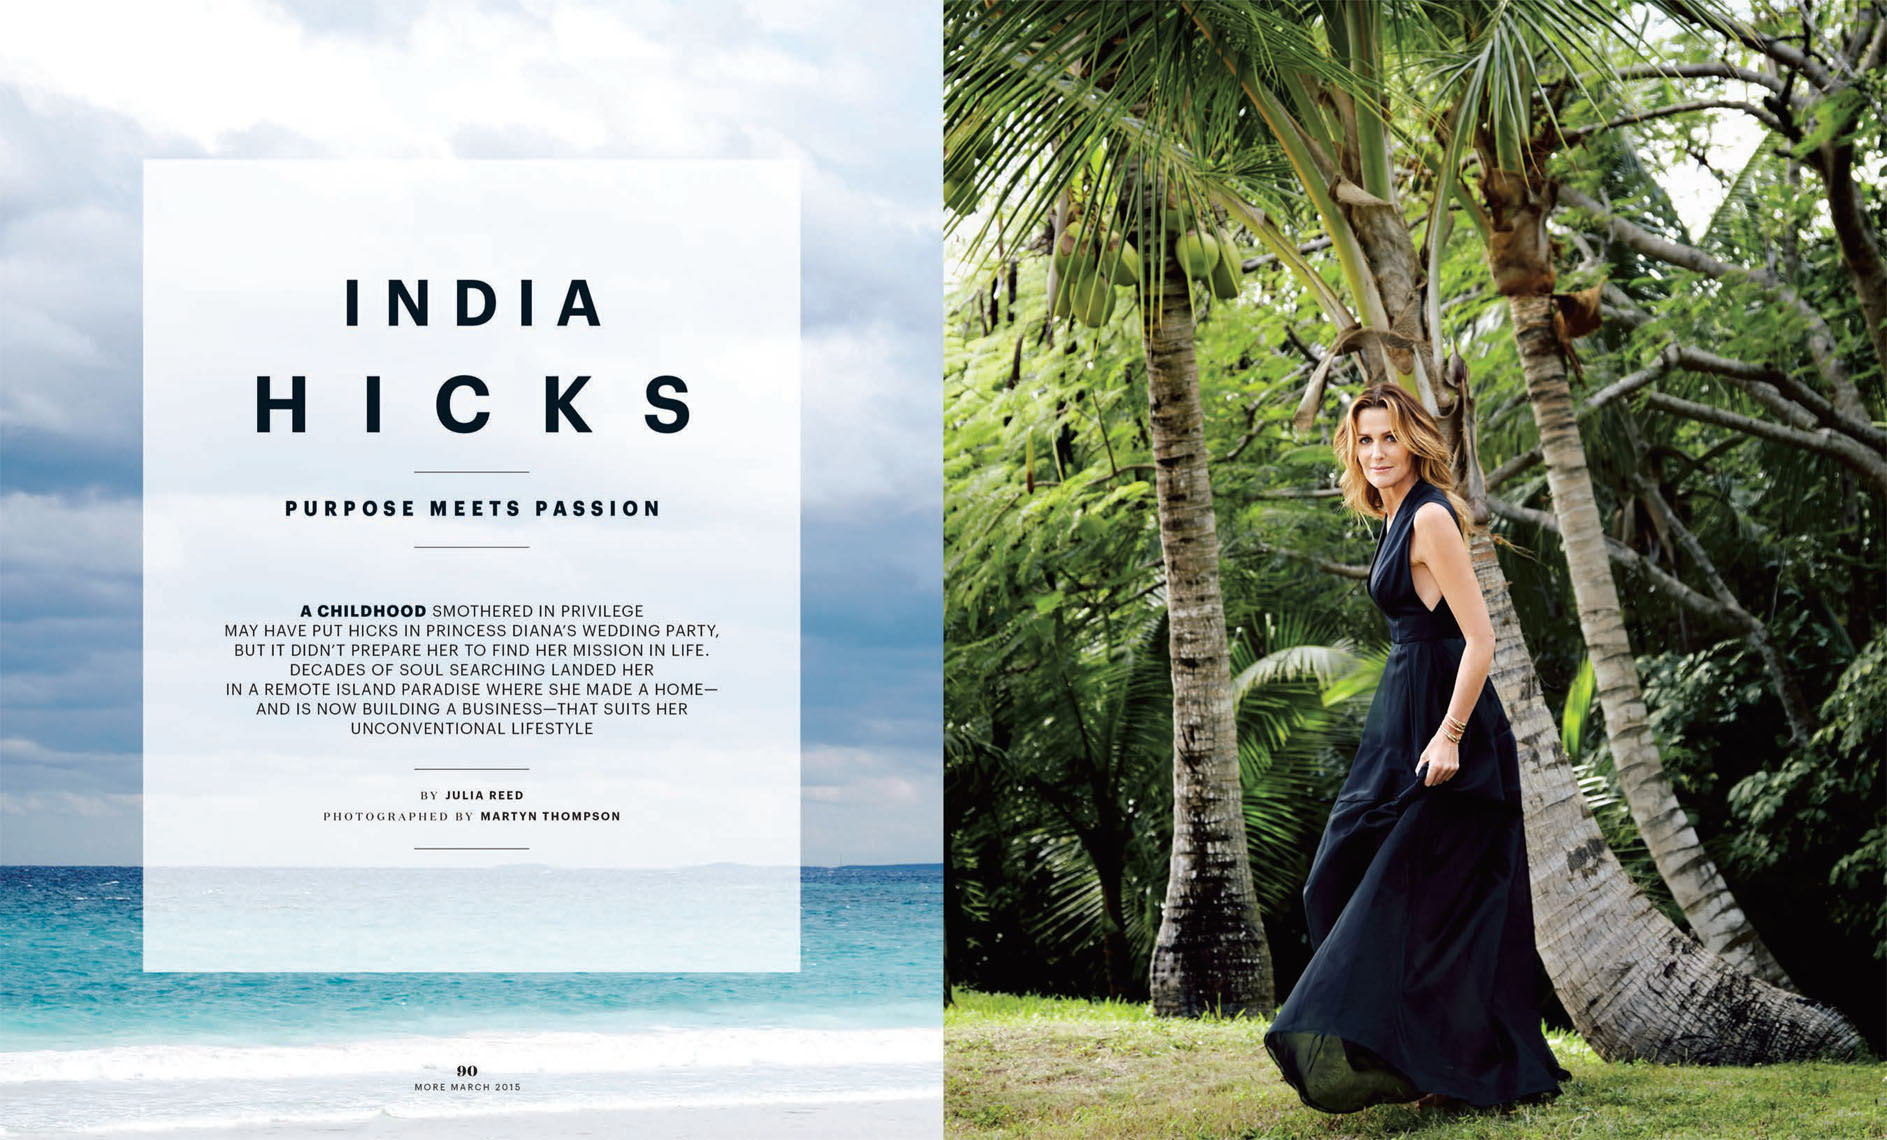 090-095 MR0315 INDIAHICKS_R-1